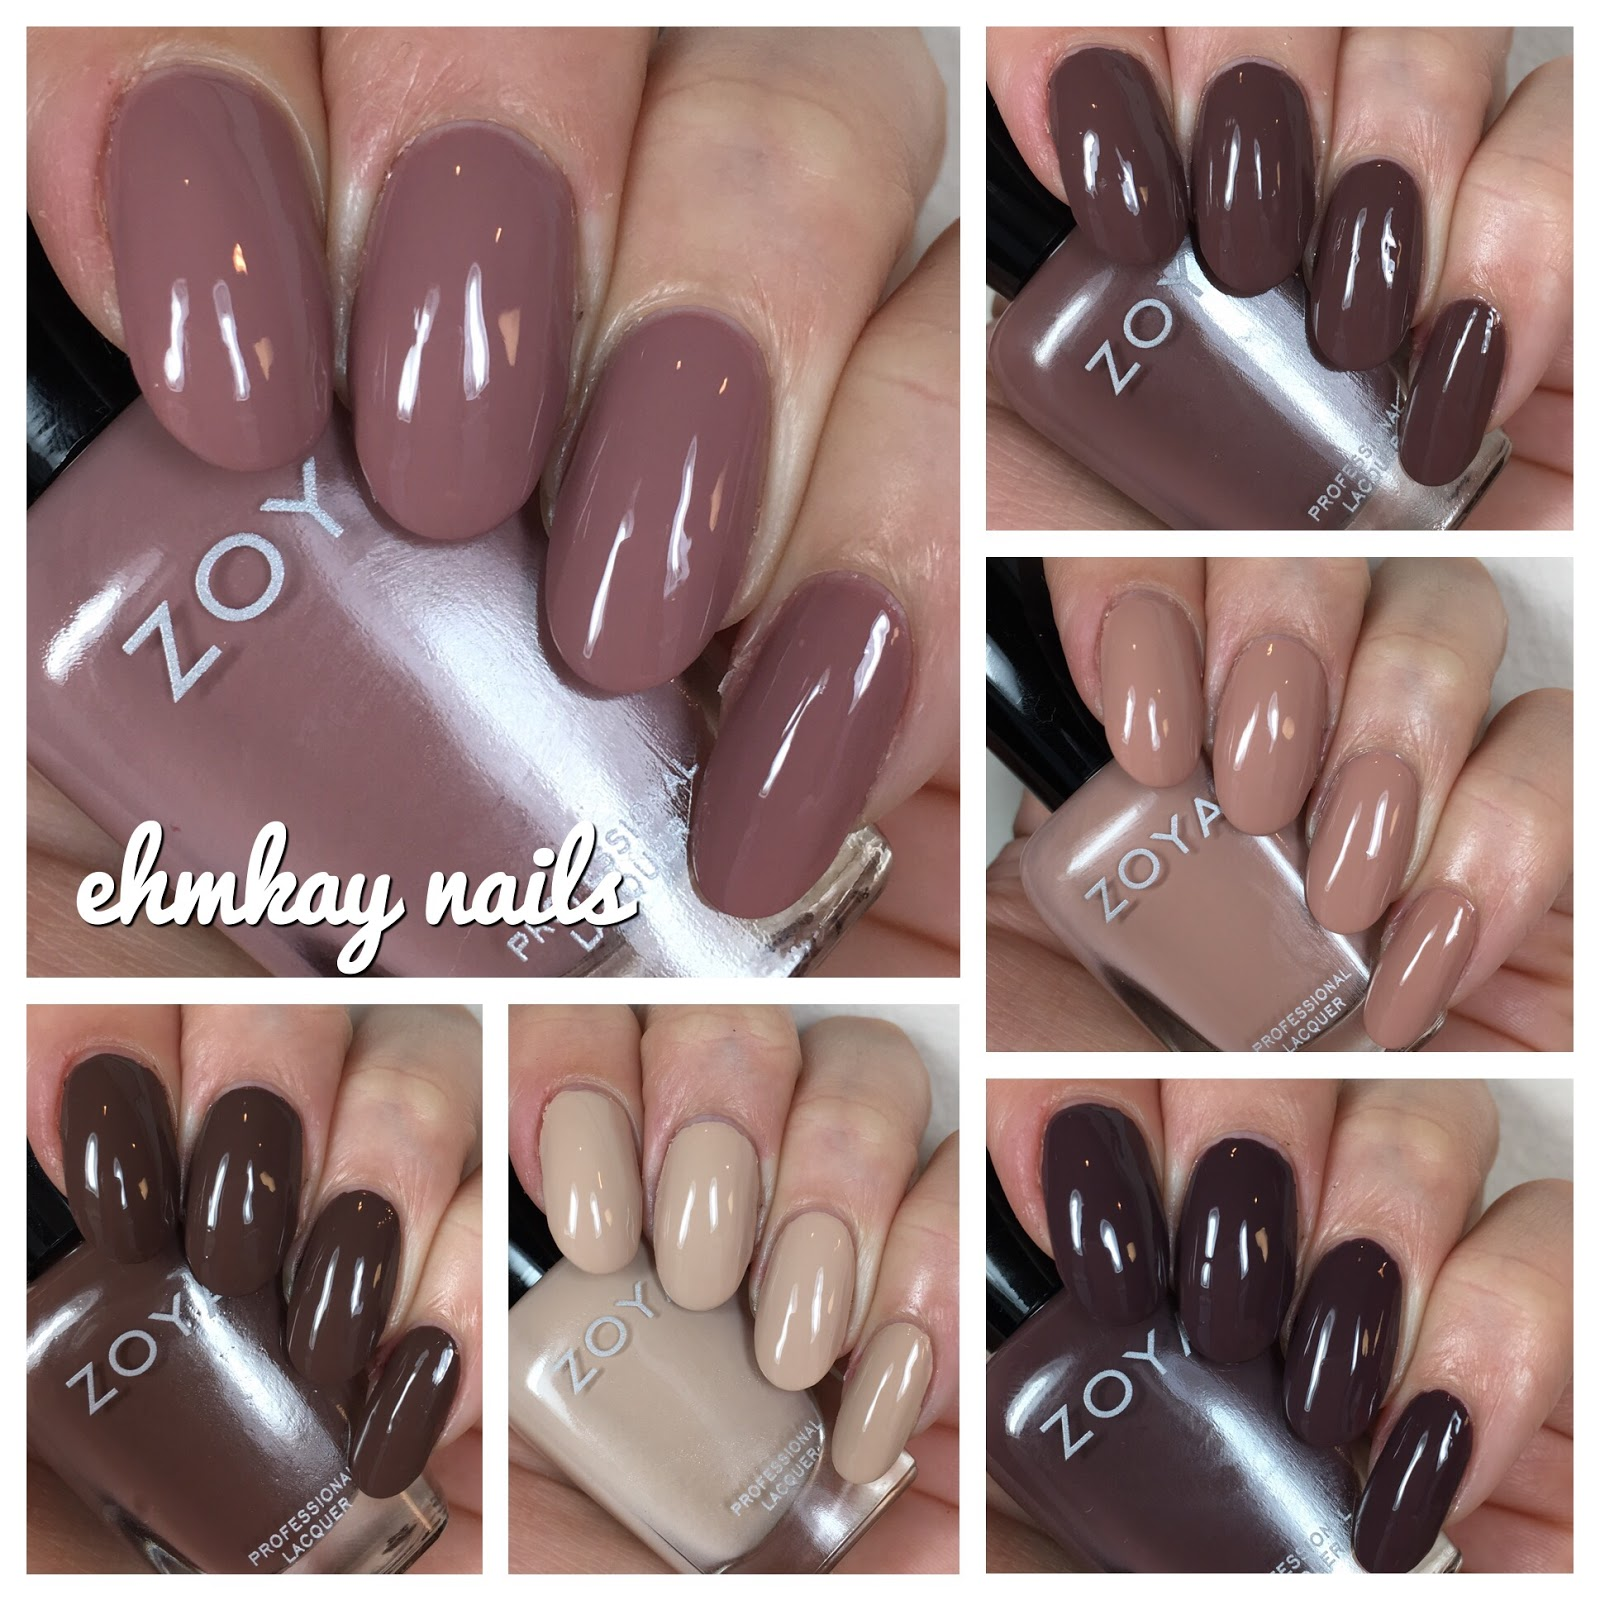 ehmkay nails: Zoya Naturel (3) Swatches and Review